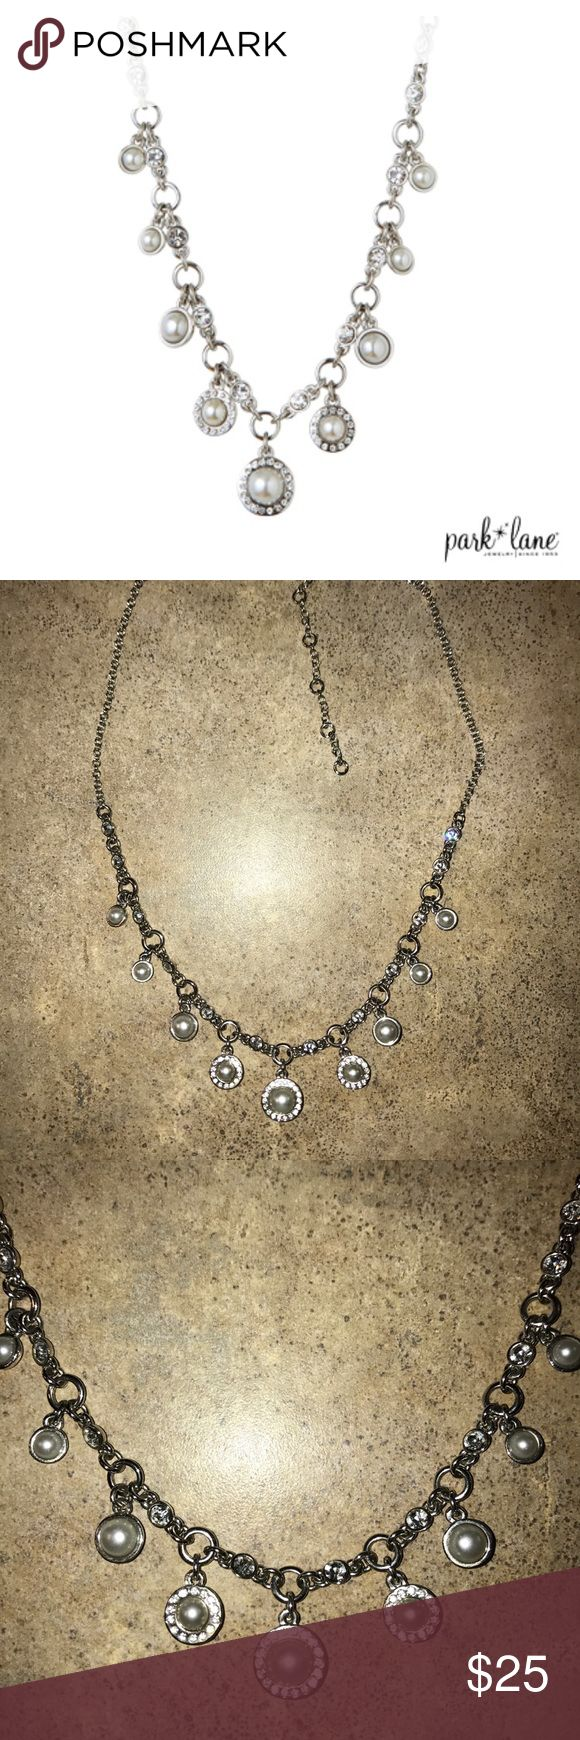 """""""Admire"""" pearl drop necklace by Park Lane Admire multi pearl drop necklace by Park Lane. Lustrous glass pearls, crystal pendants and charms dangle from the chain necklace. Park Lane Jewelry Necklaces"""